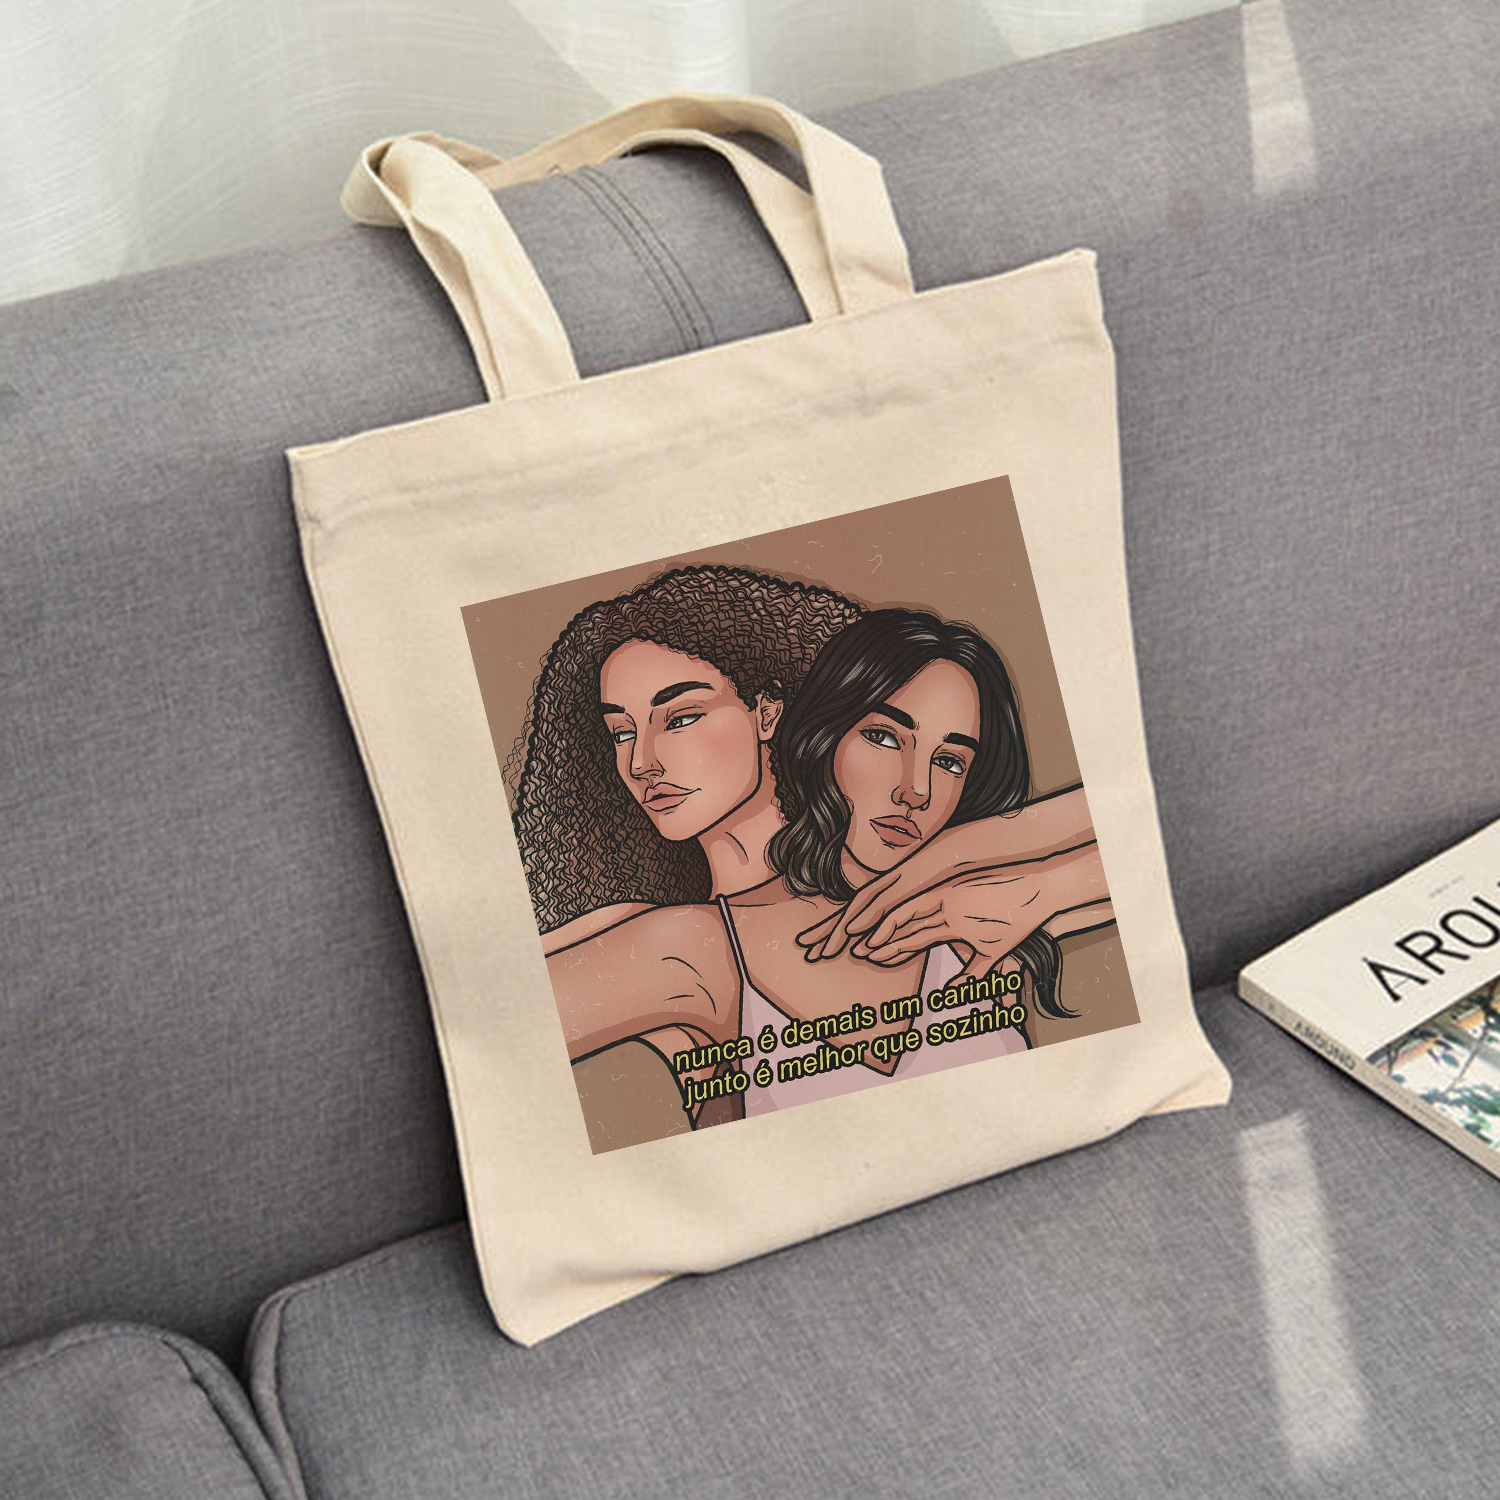 Top Tote Bag For Women Foldable Shopping Bags Ladies Black Girls African Magic Canvas Reusable Women Bags Cotton Bags For Gifts